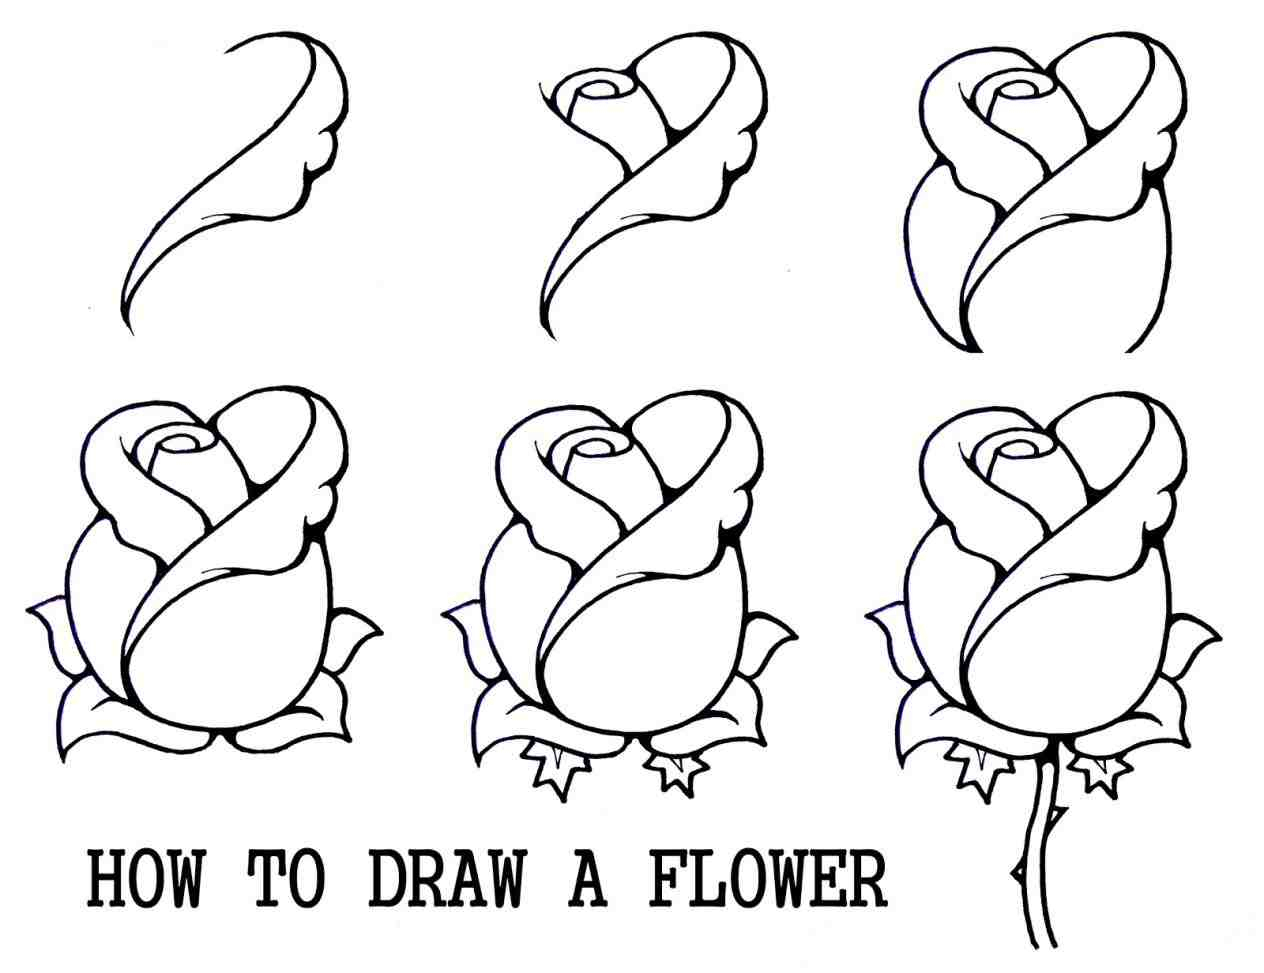 10 Unique Ideas For Kids To Draw 8 fantastic drawing ideas for beginners kids photos kids drawing 2020